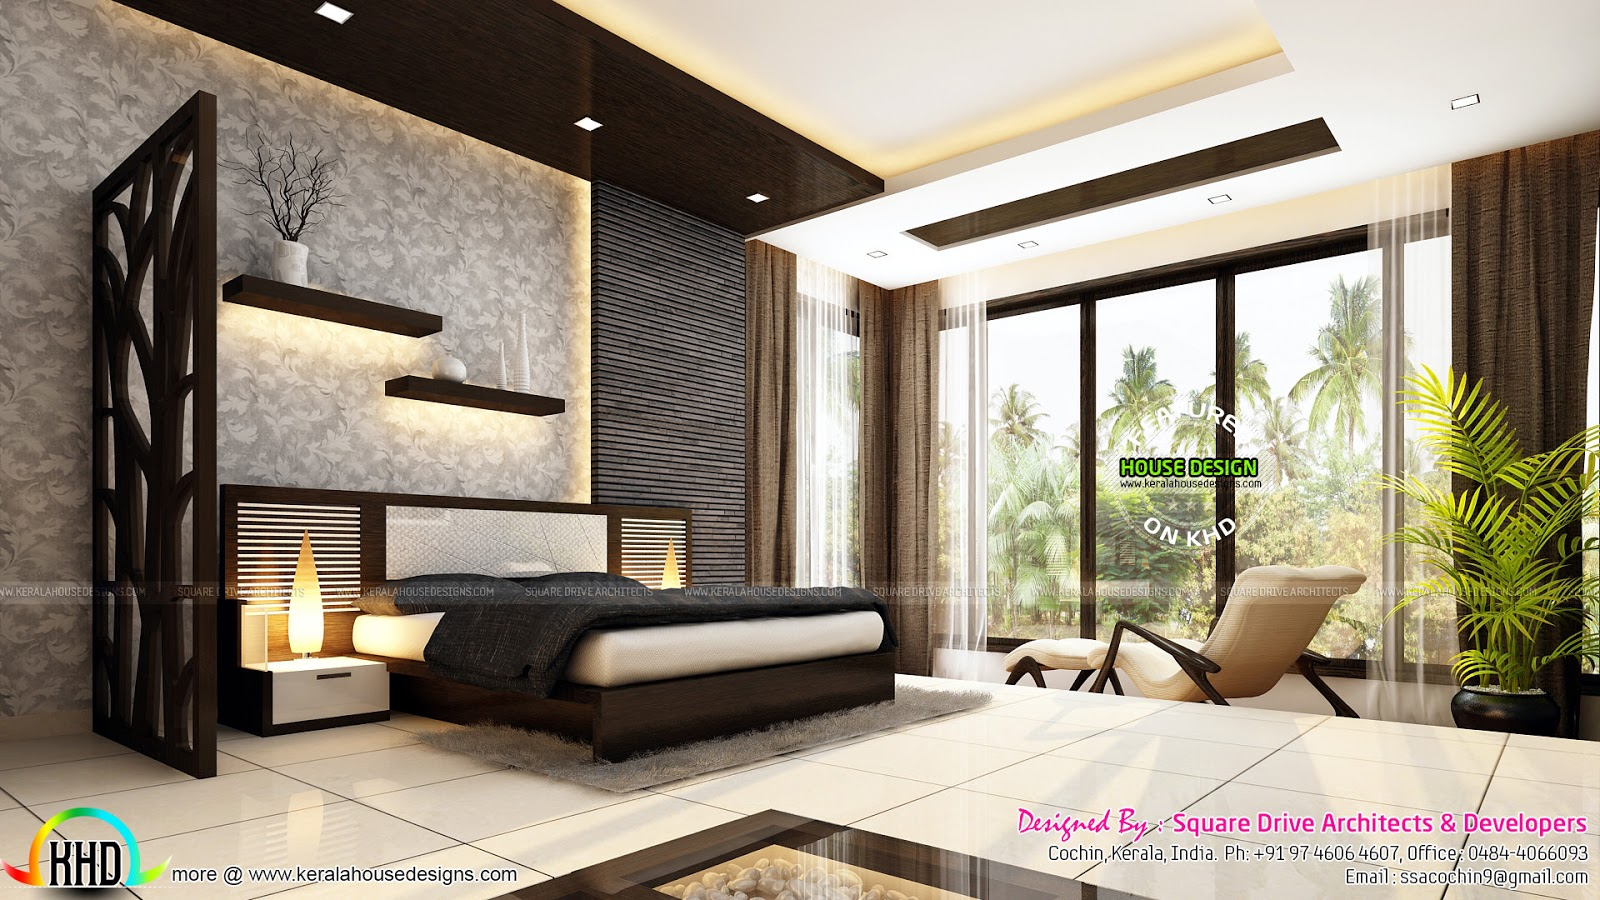 Very beautiful modern interior designs kerala home Beautiful home interior designs